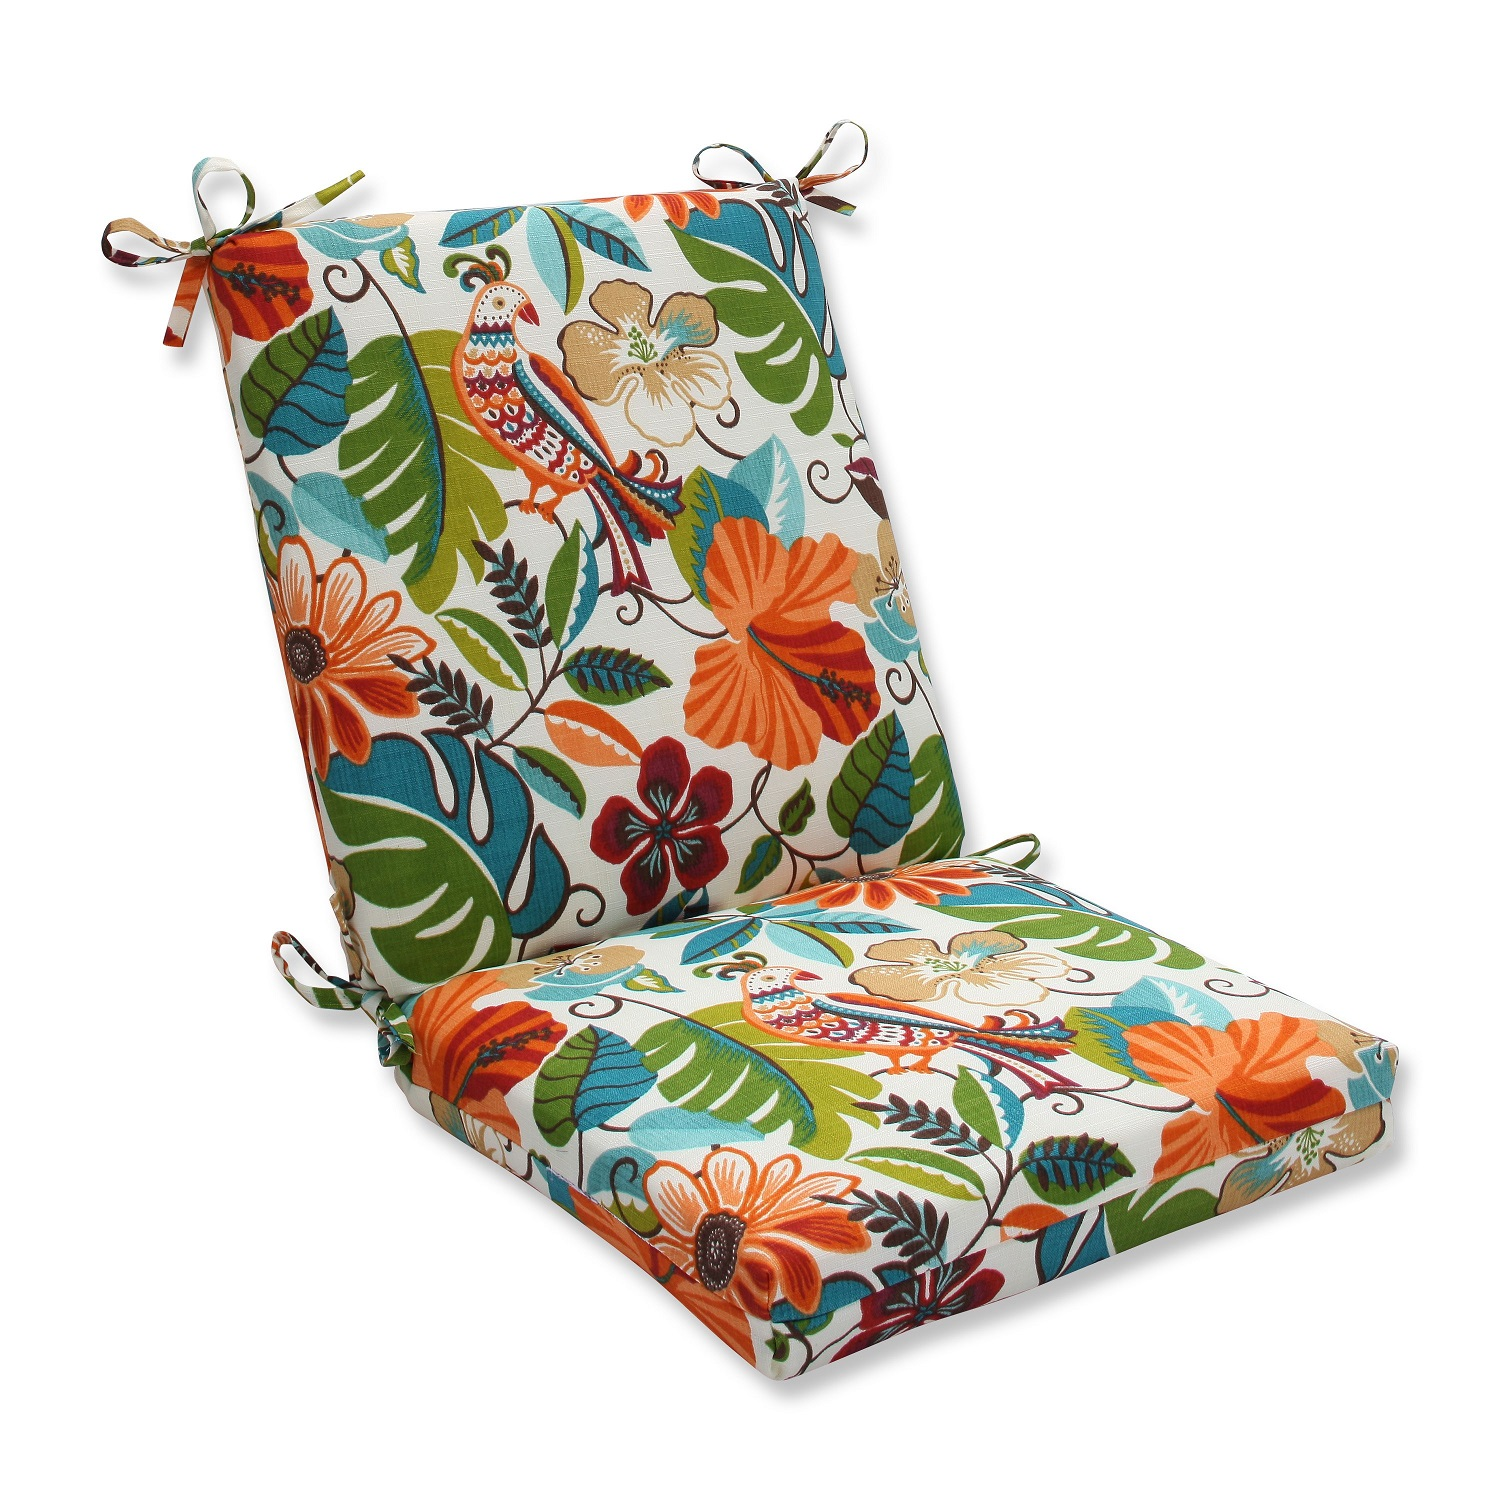 36 5 orange and green floral outdoor patio chair cushions with back 19 walmart com